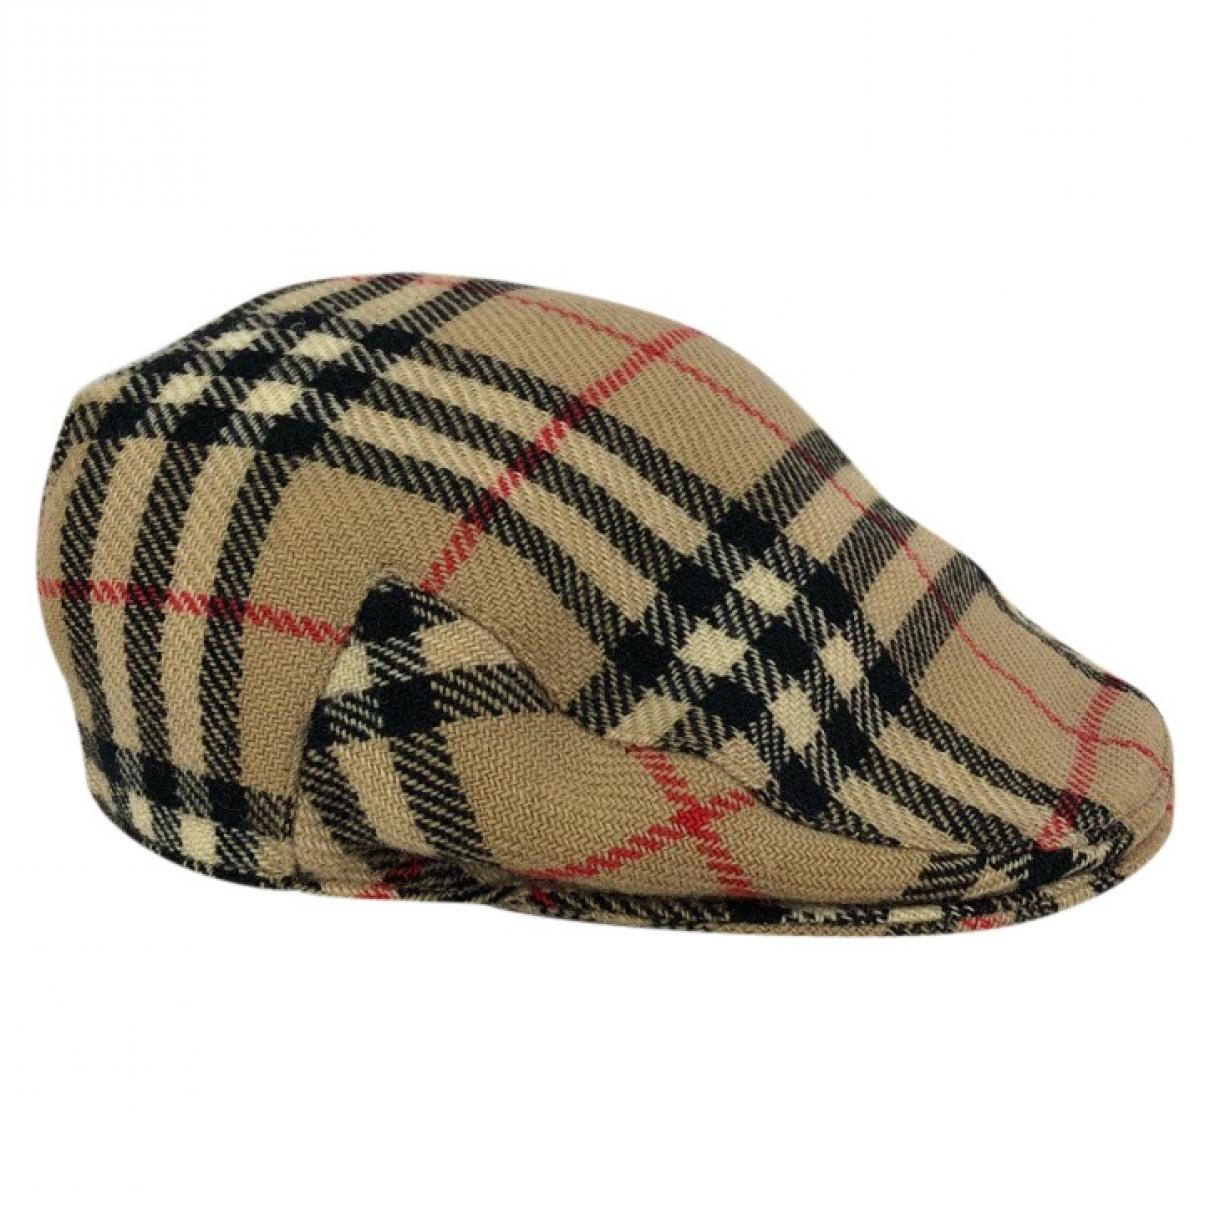 4df864b4415 Lyst - Burberry Vintage Beige Wool Hats   Pull On Hats in Natural ...